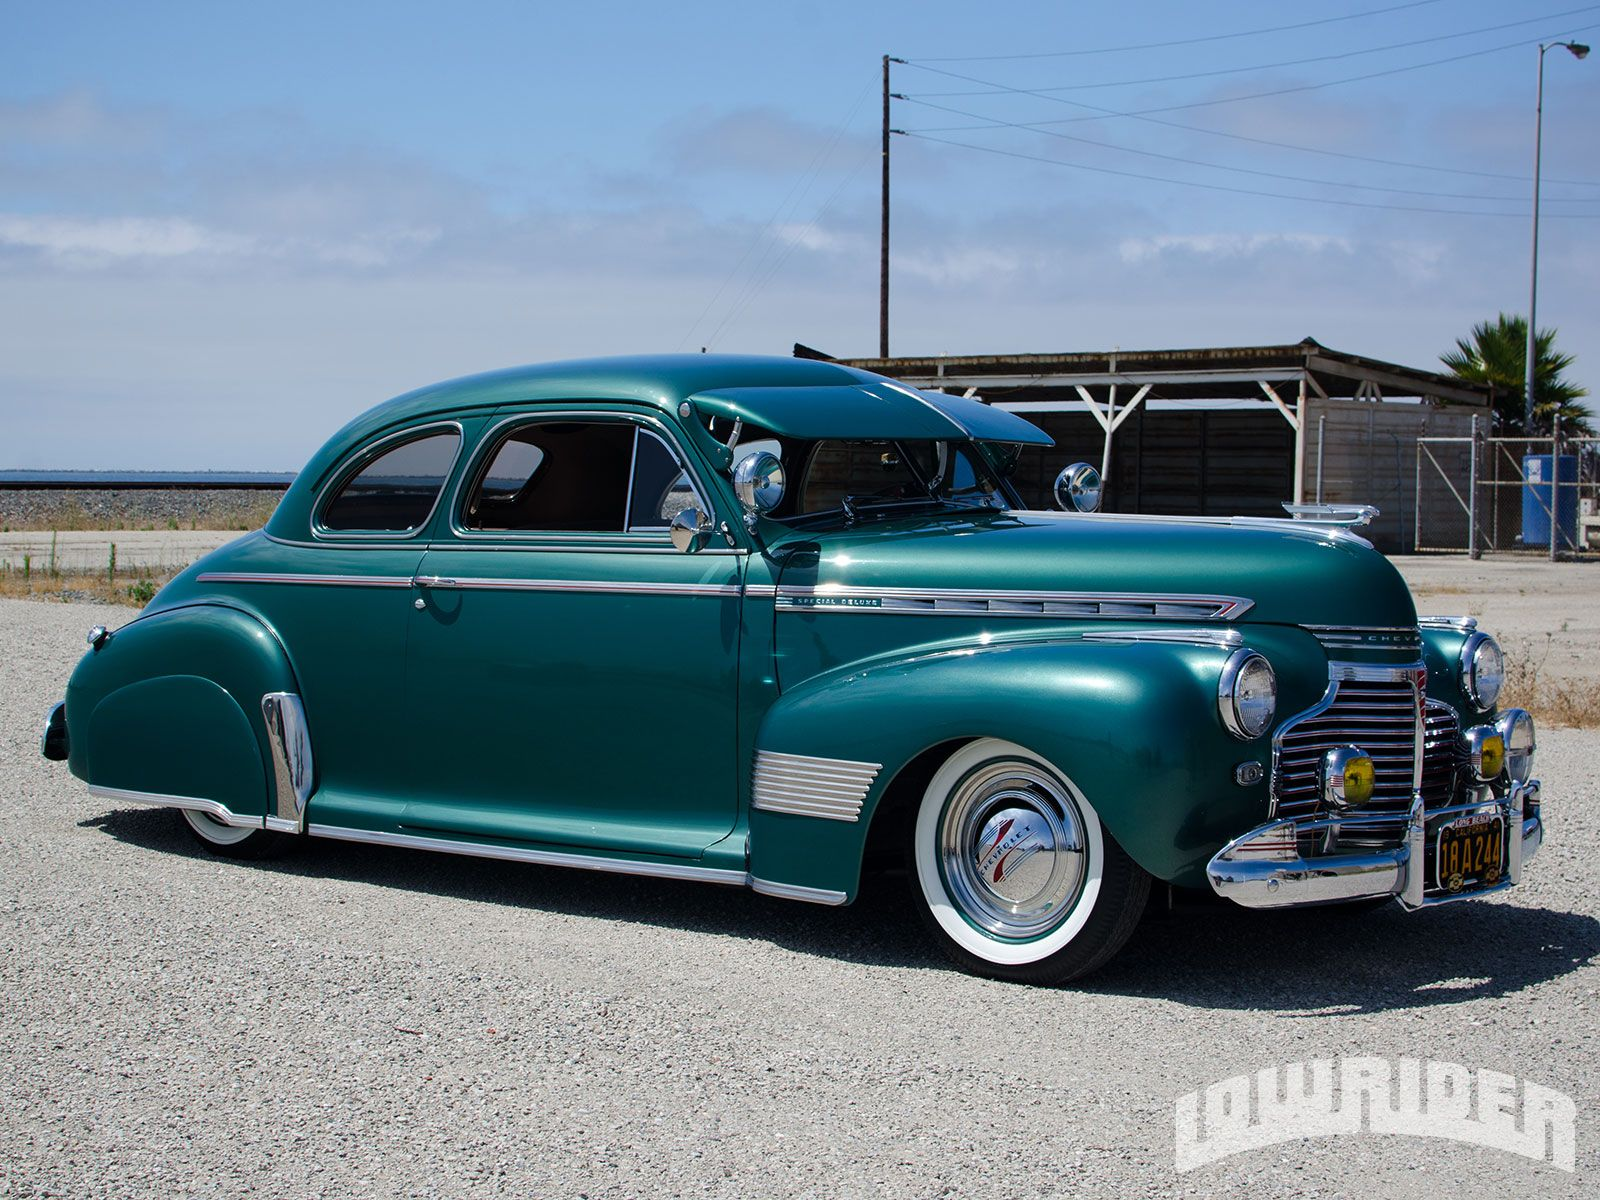 41 Chevy Coupe Classic Cars Vintage Dream Cars Retro Cars